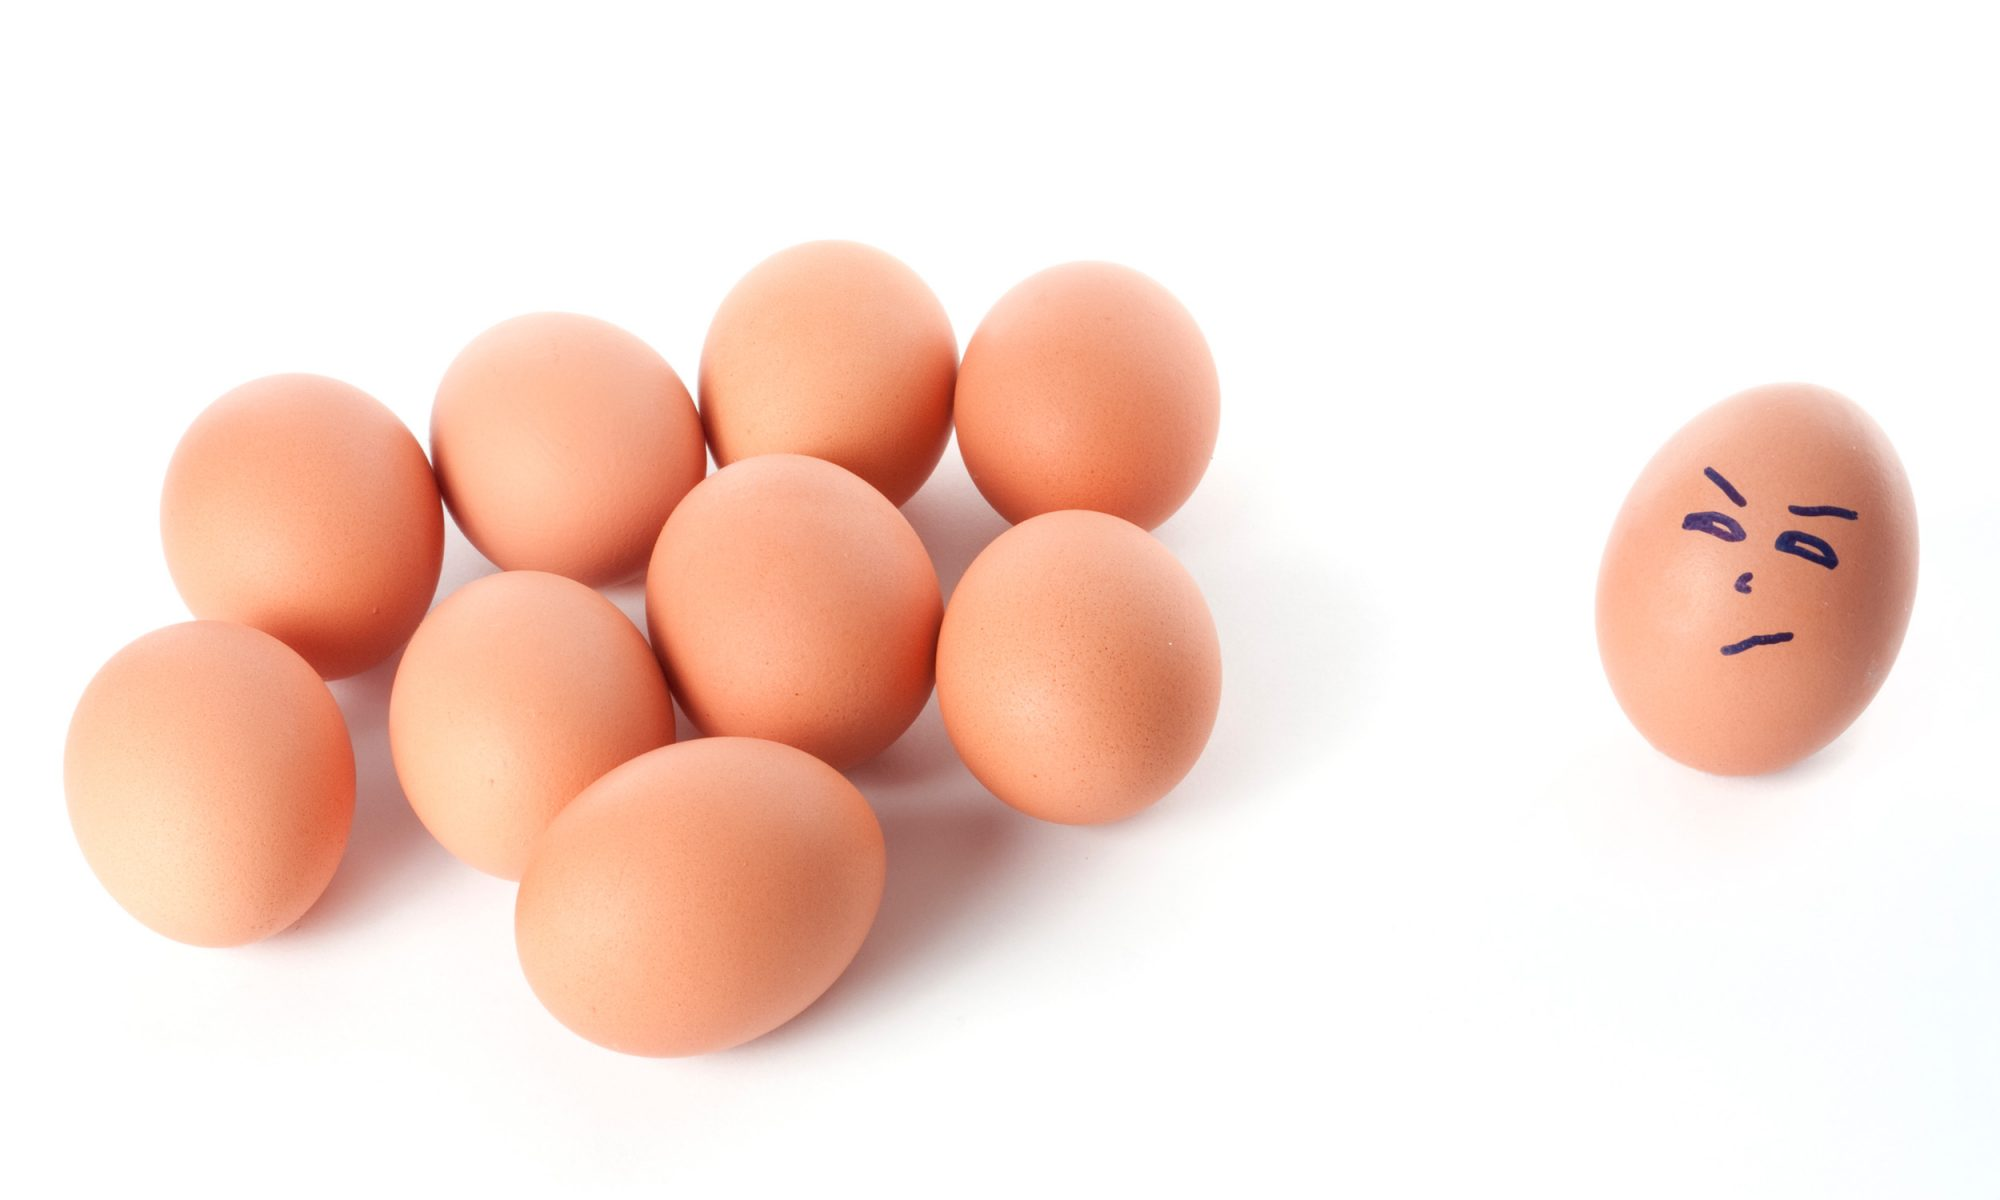 EC: How to Store Eggs Safely